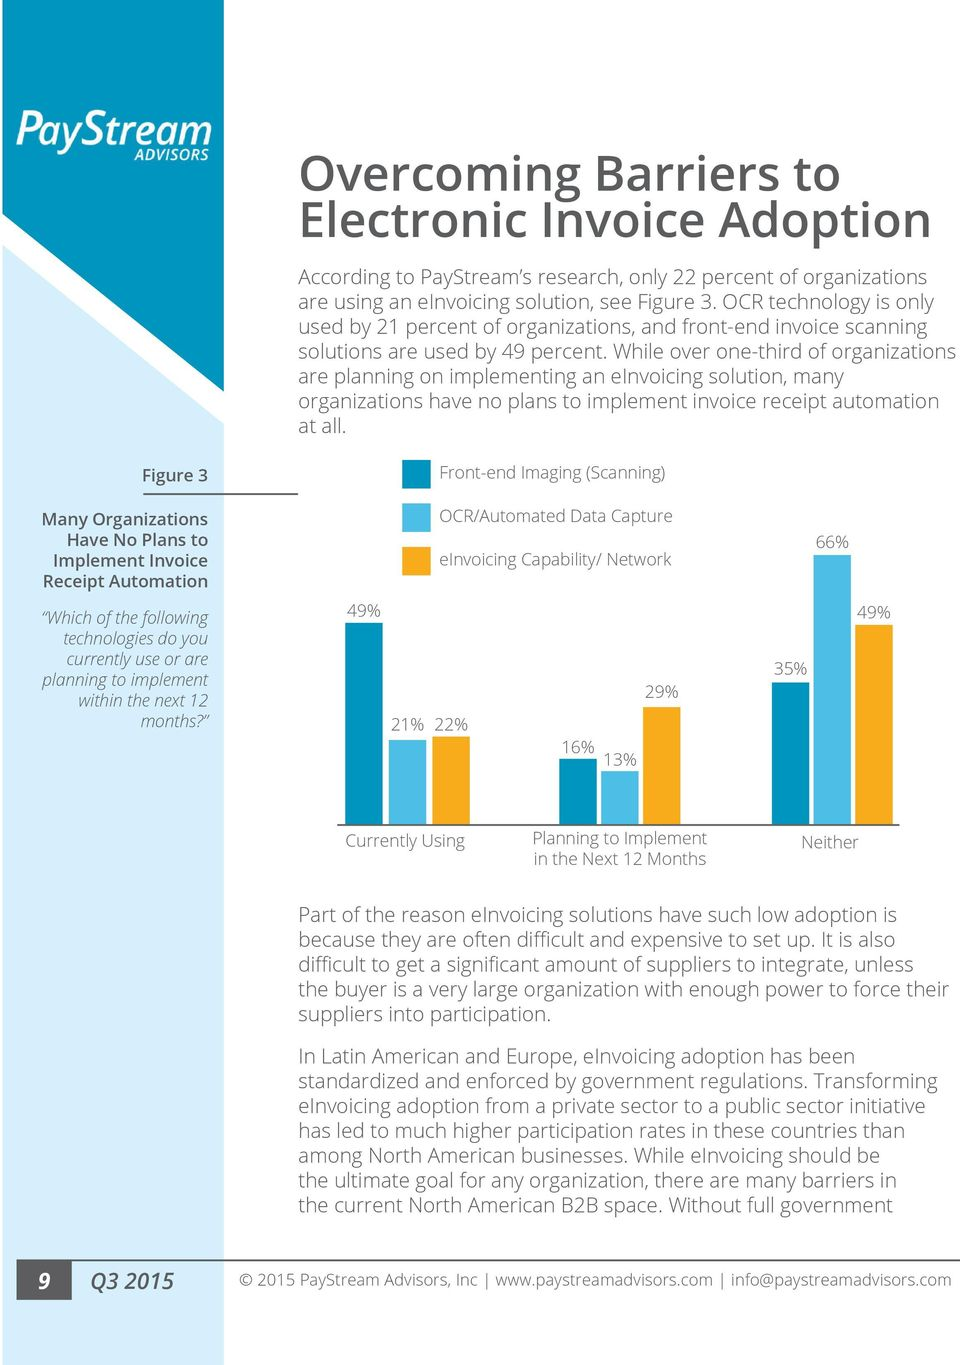 While over one-third of organizations are planning on implementing an einvoicing solution, many organizations have no plans to implement invoice receipt automation at all.